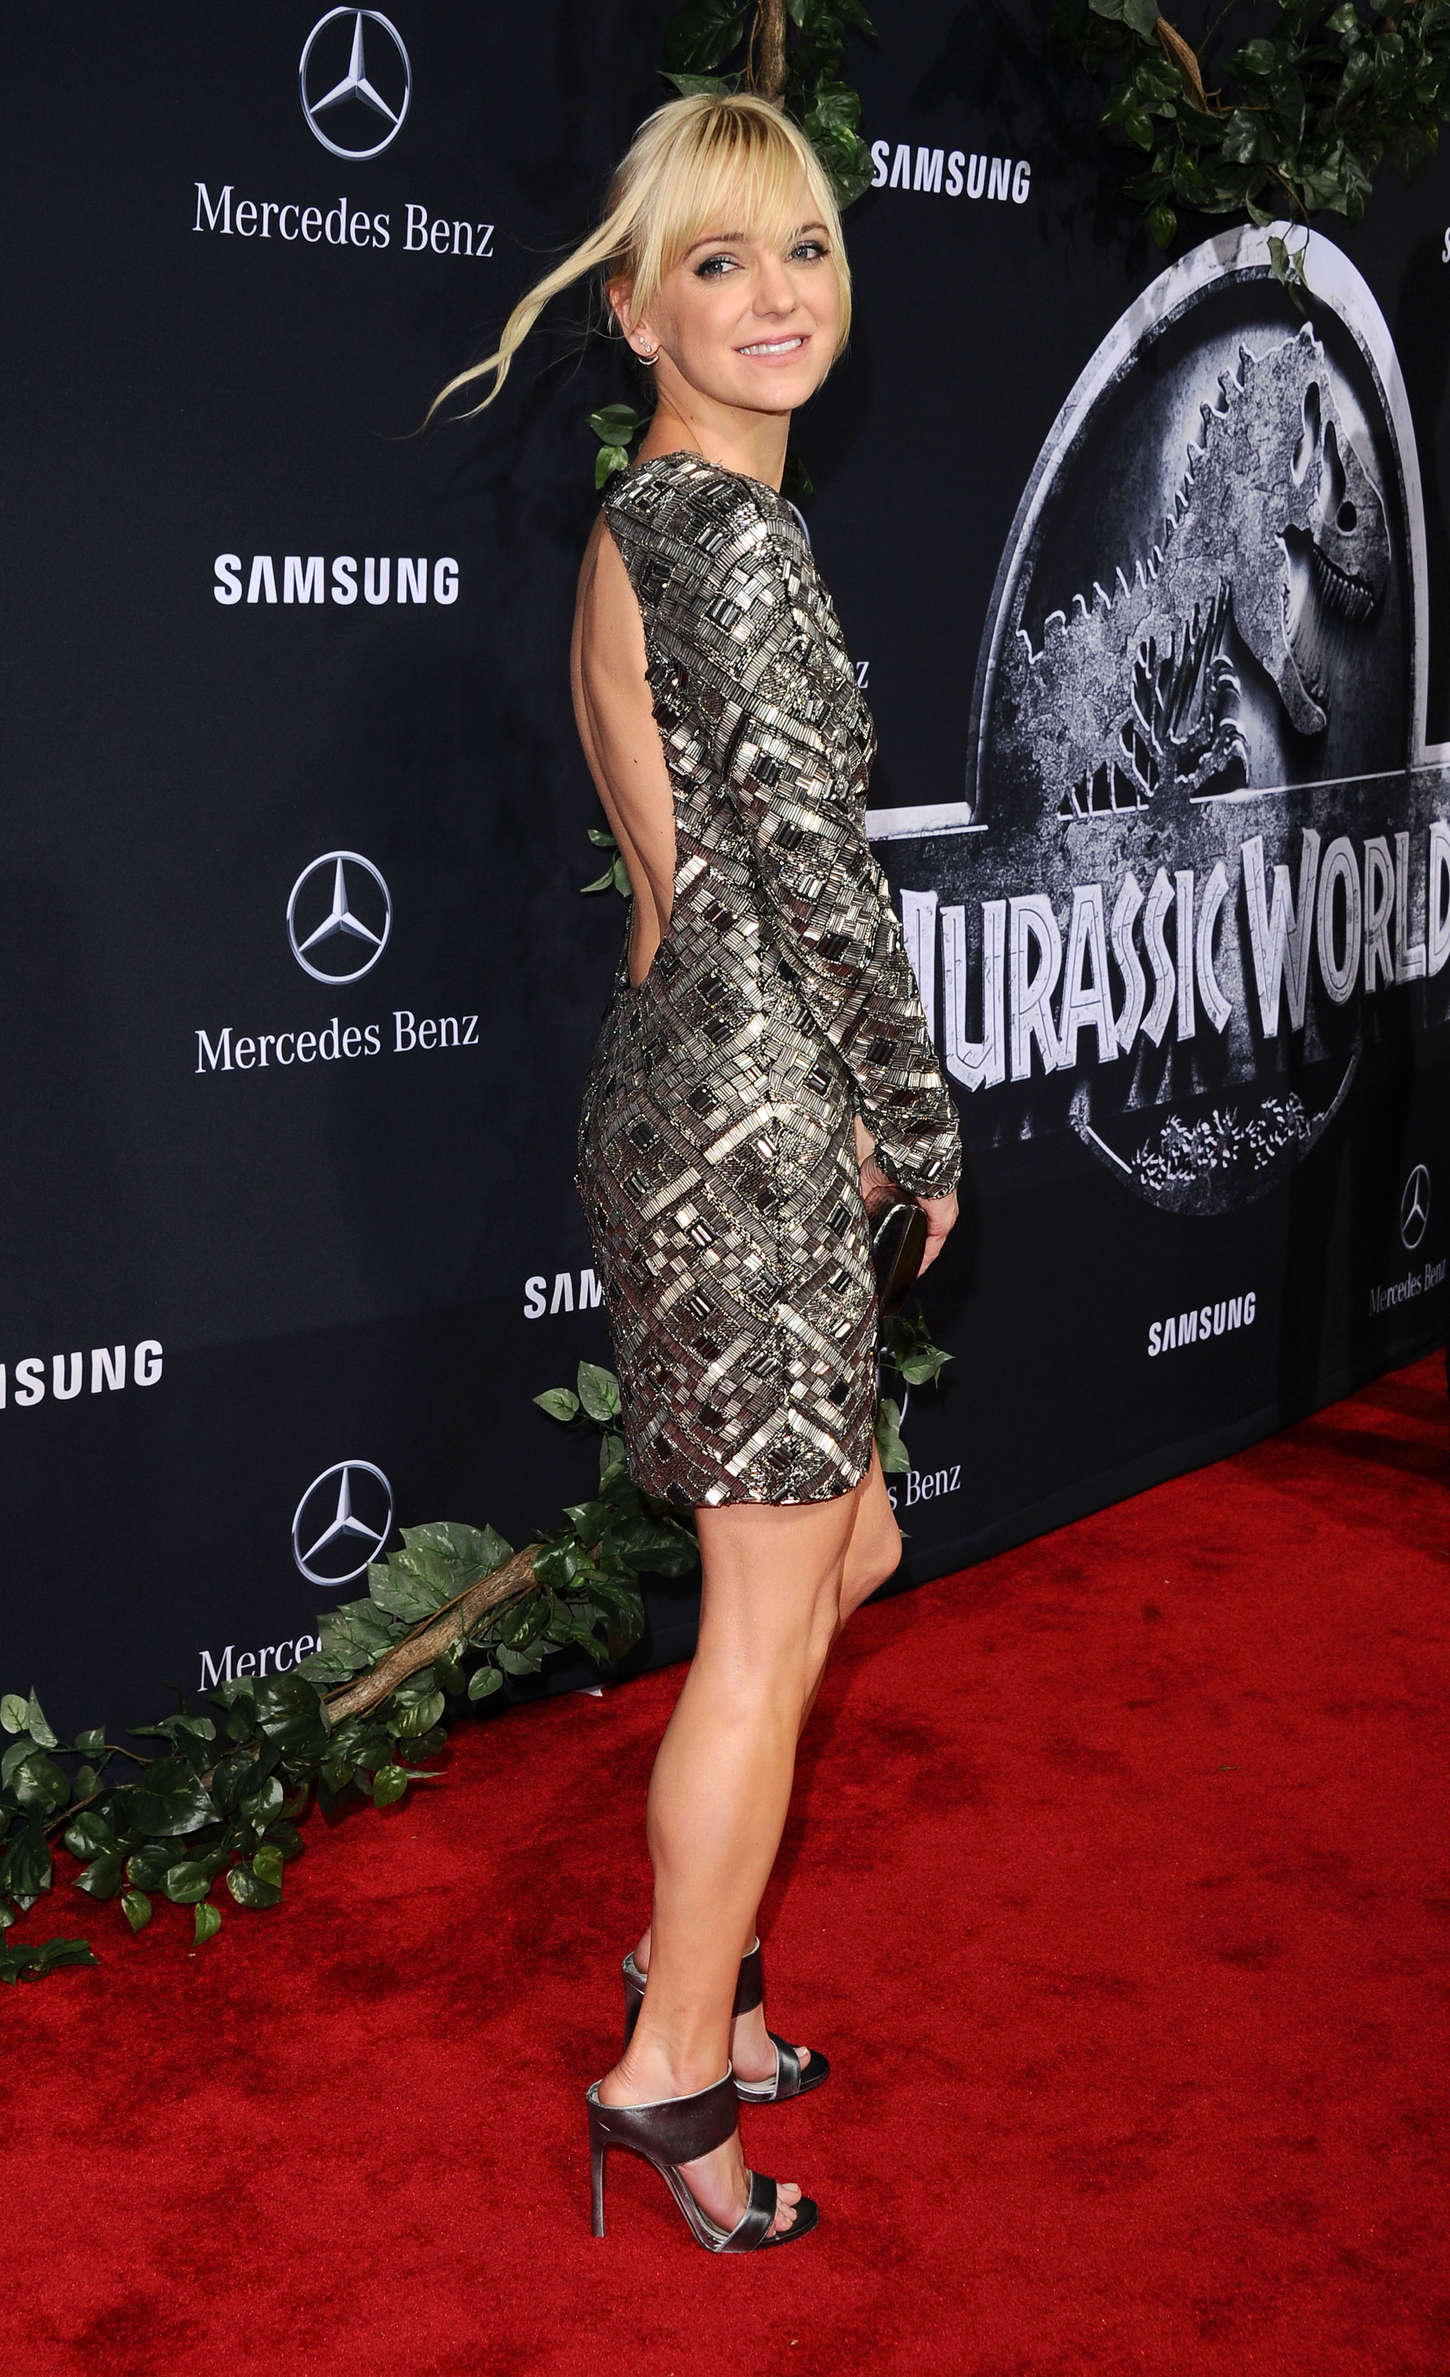 Anna Faris Jurassic World Premiere in Hollywood